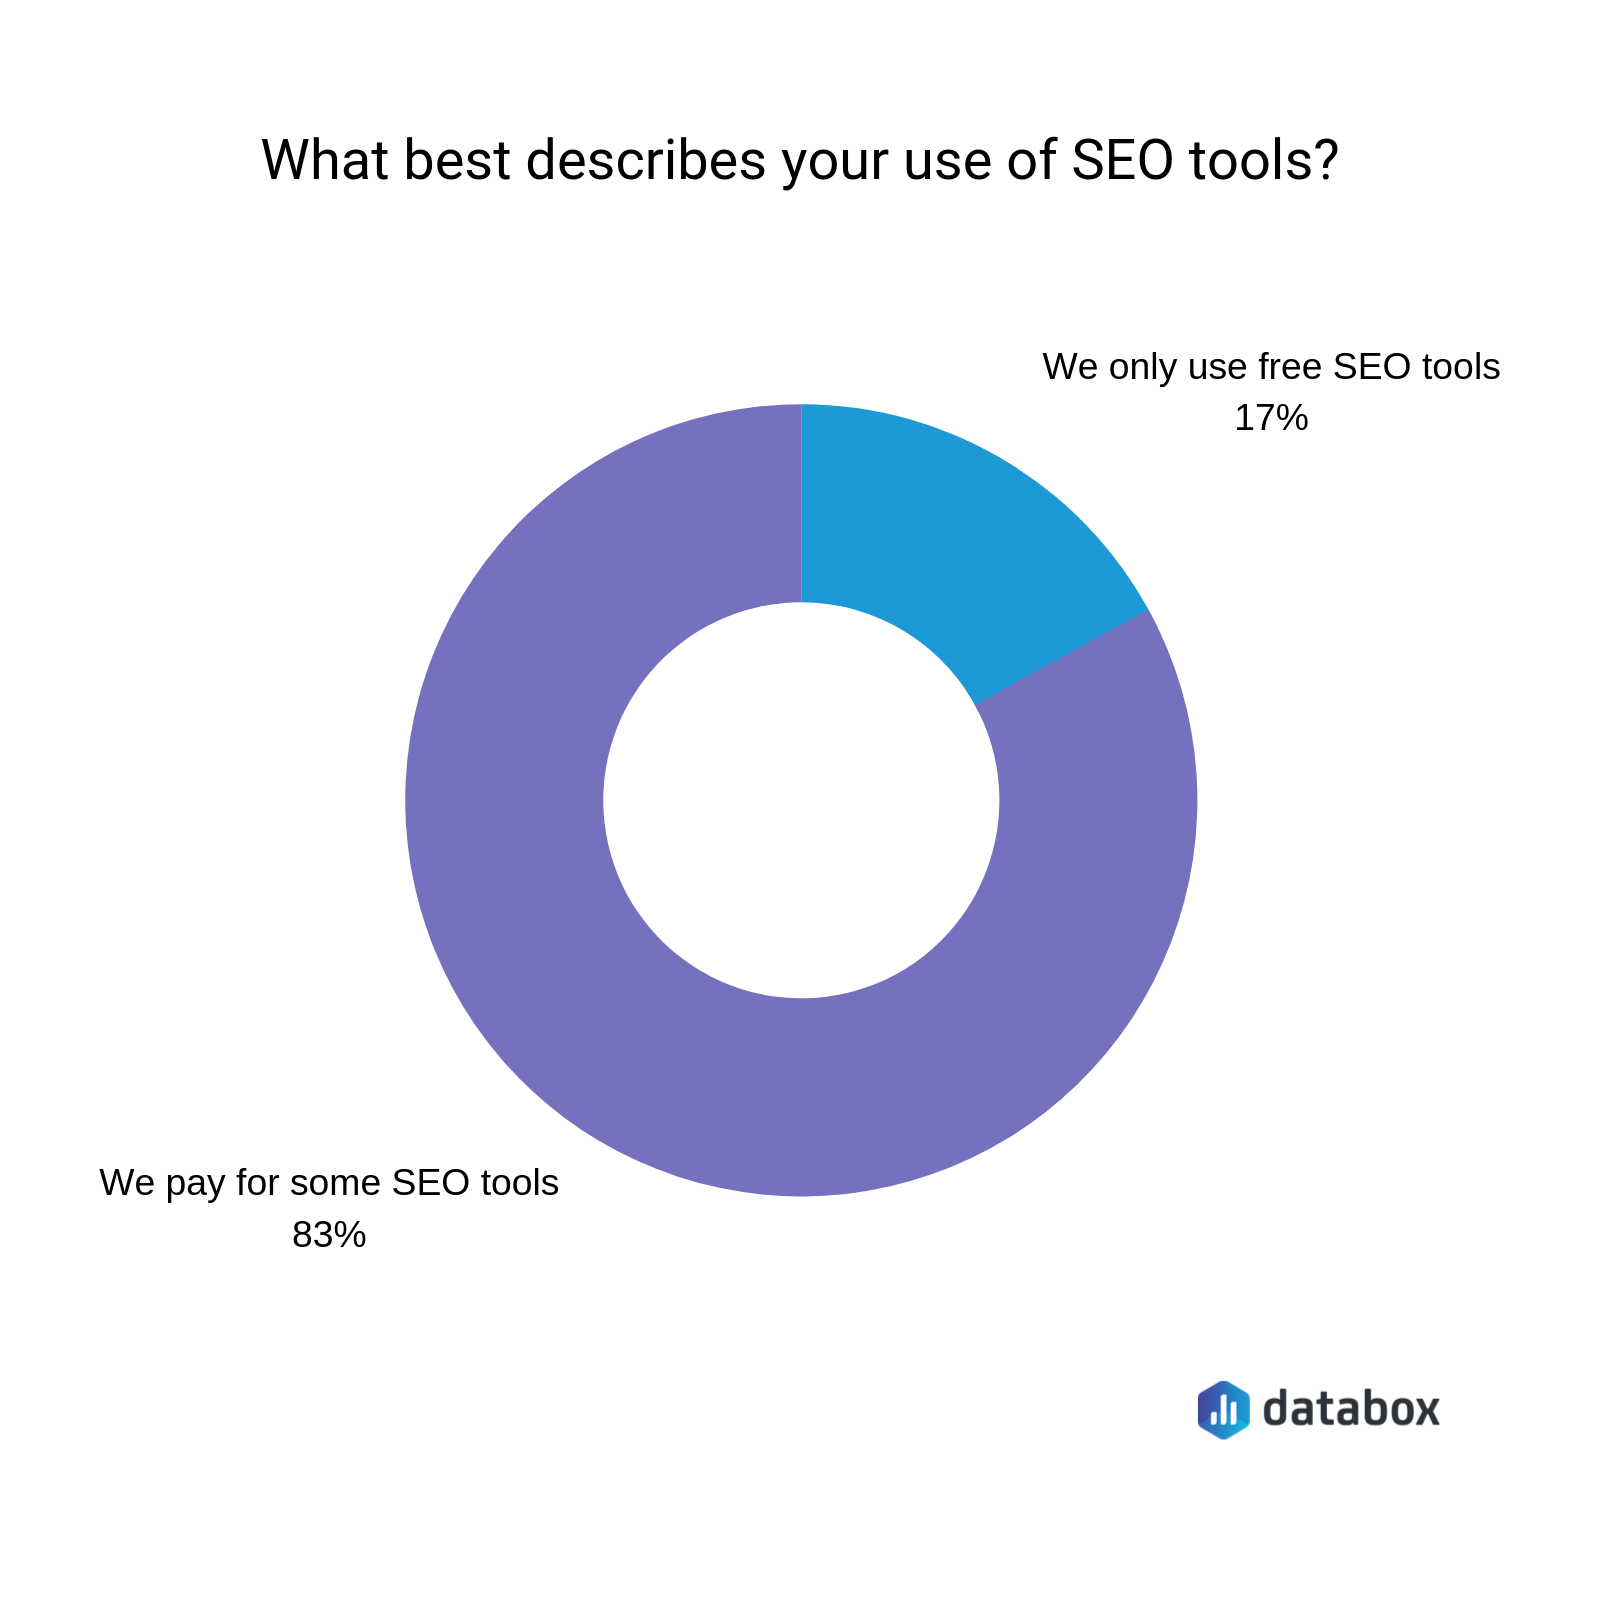 17% of marketers use free seo tools exclusively